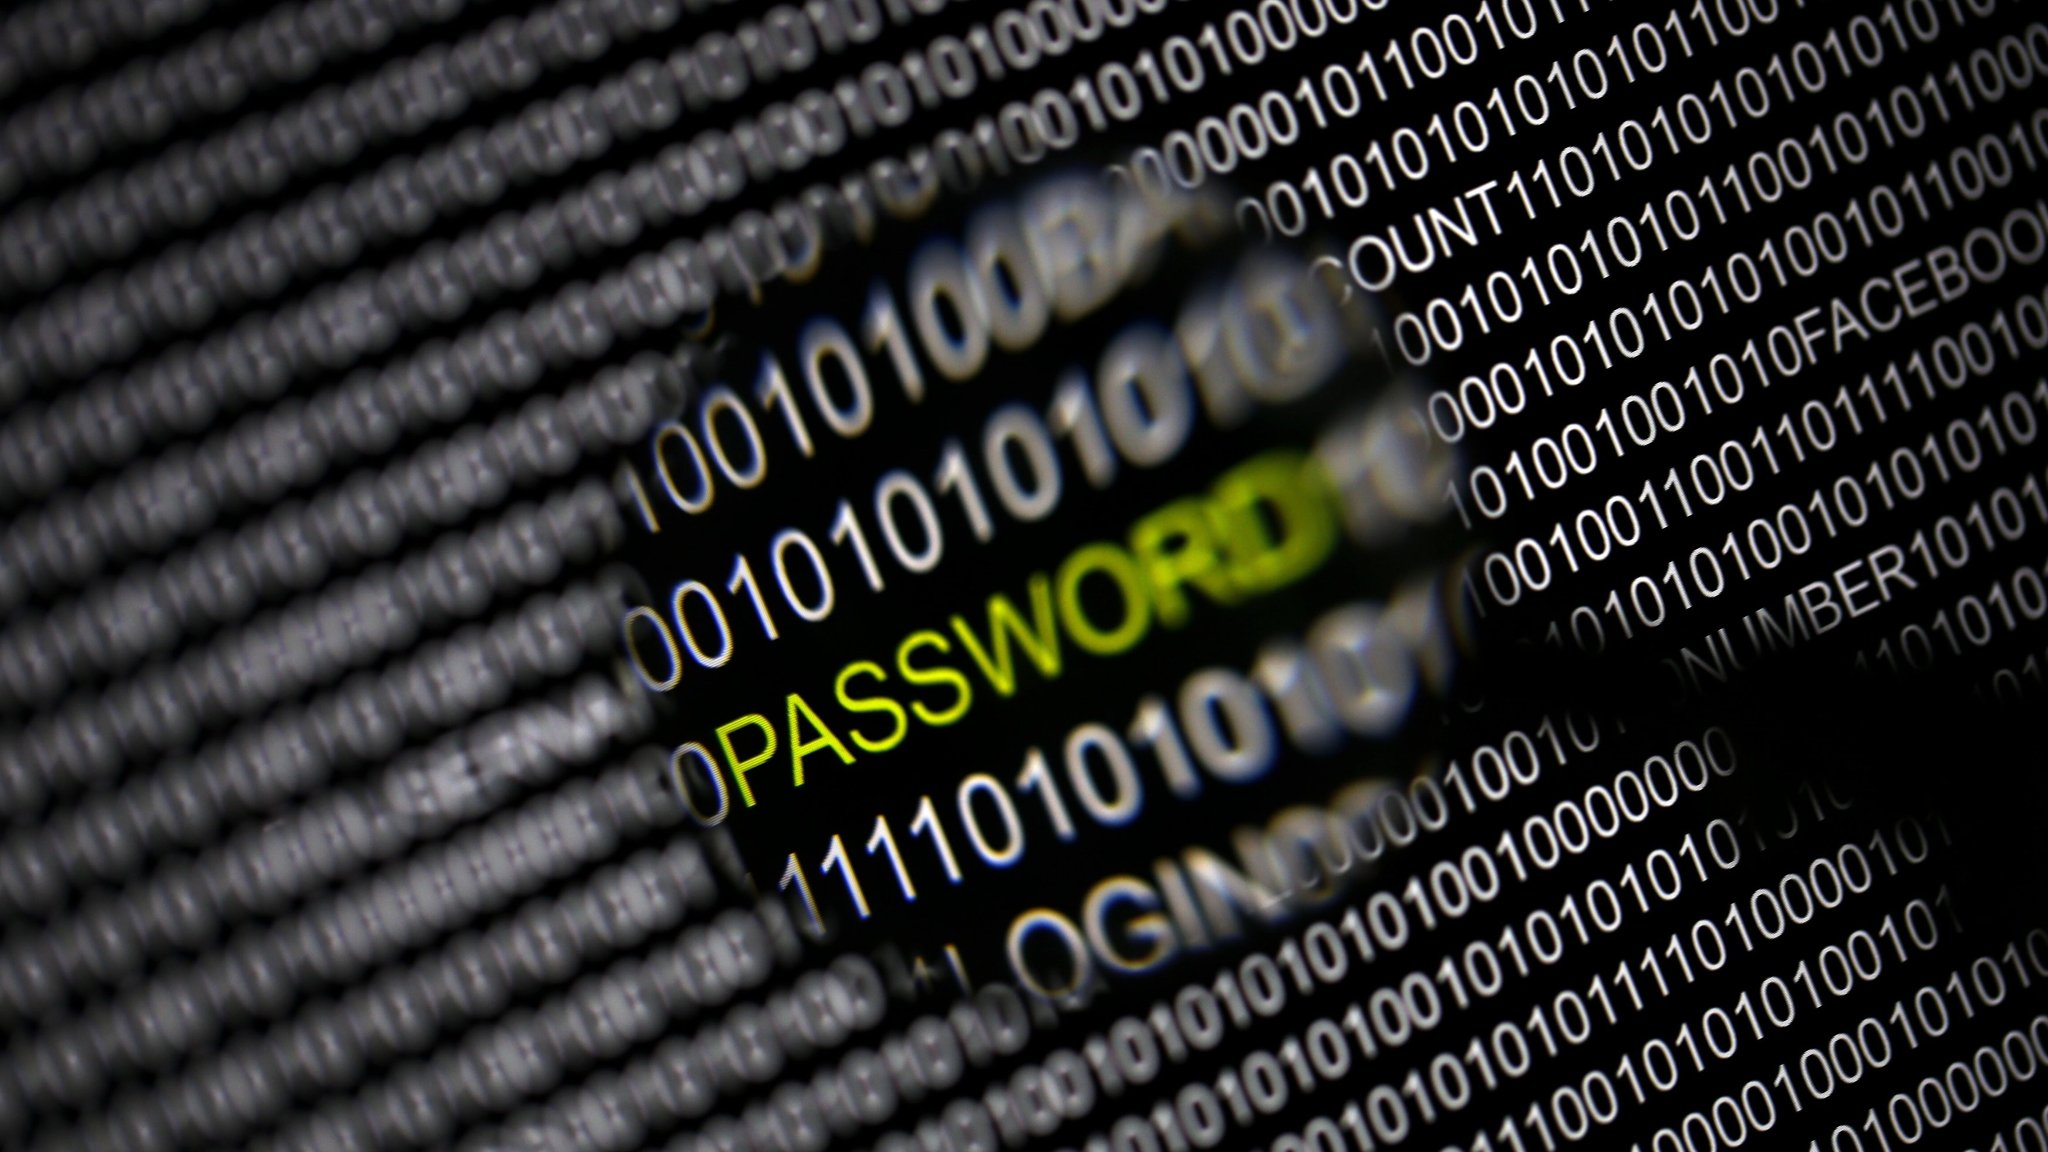 Why the password may be passing into history   Financial Times